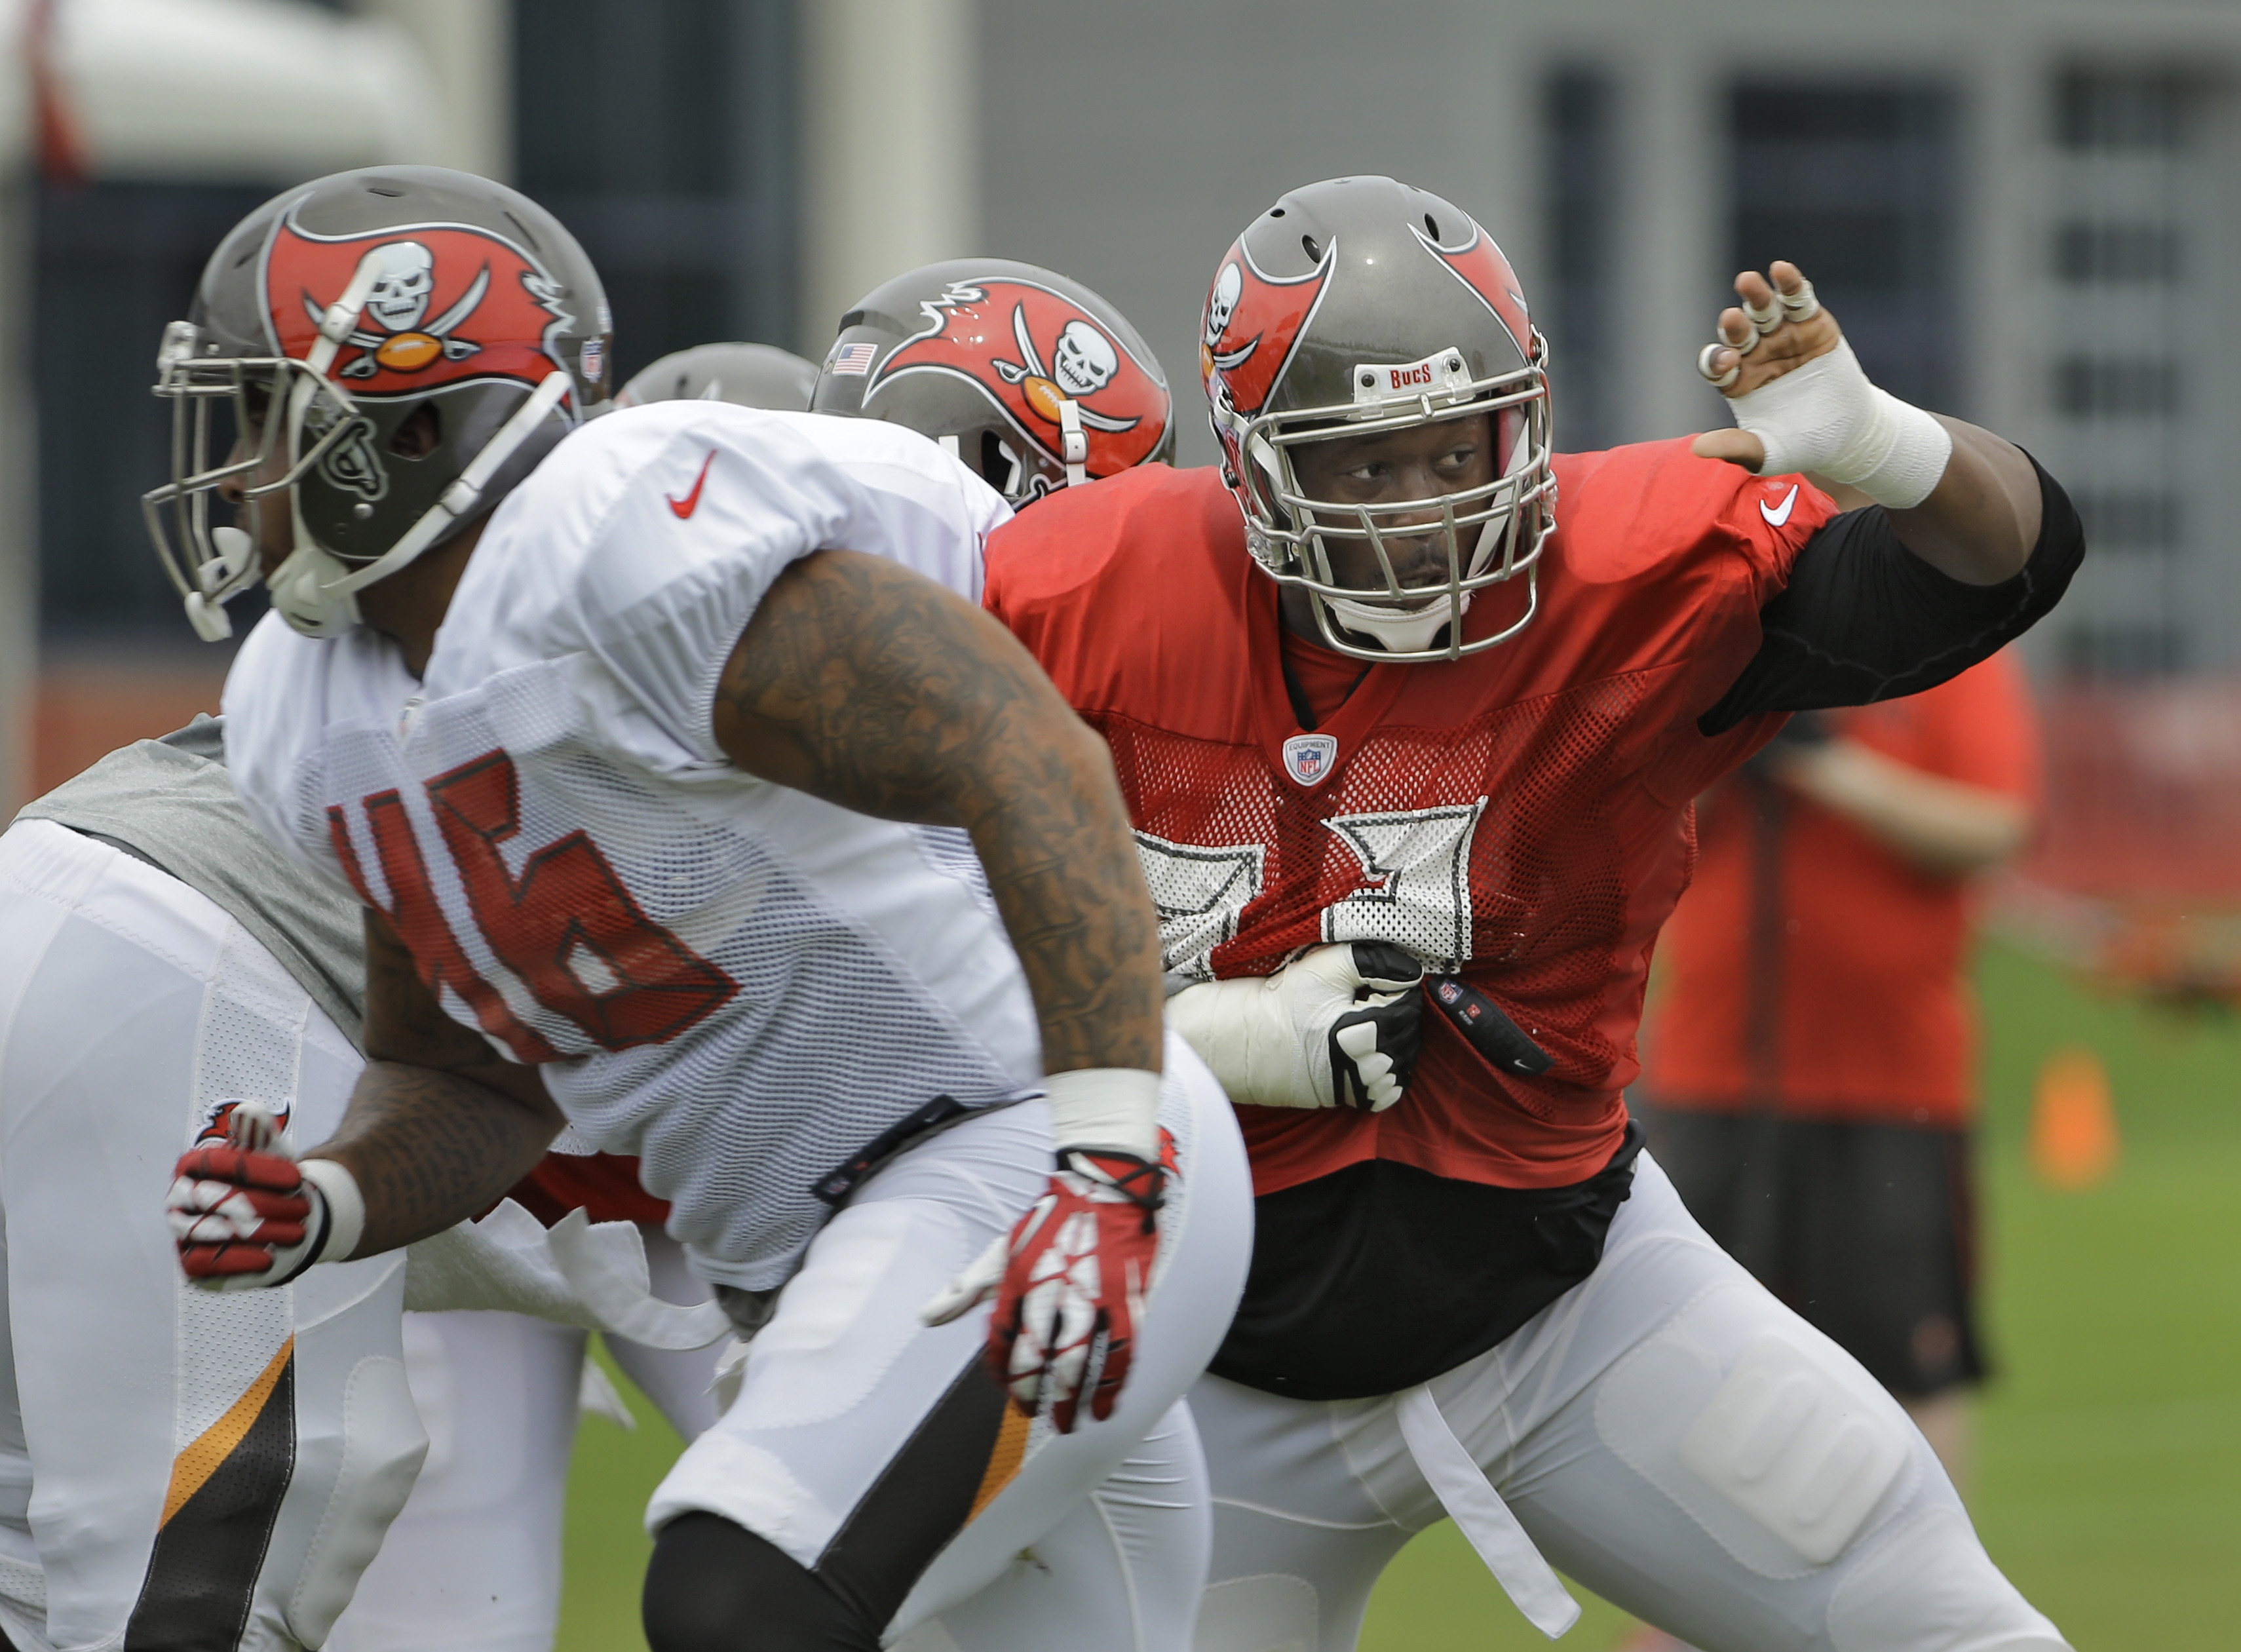 Tampa Bay Buccaneers defensive tackle Gerald McCoy, right, pressures the offense during a Buccaneers NFL football training camp practice Monday, Aug. 3, 2015, in Tampa, Fla. (AP Photo/Chris O'Meara)